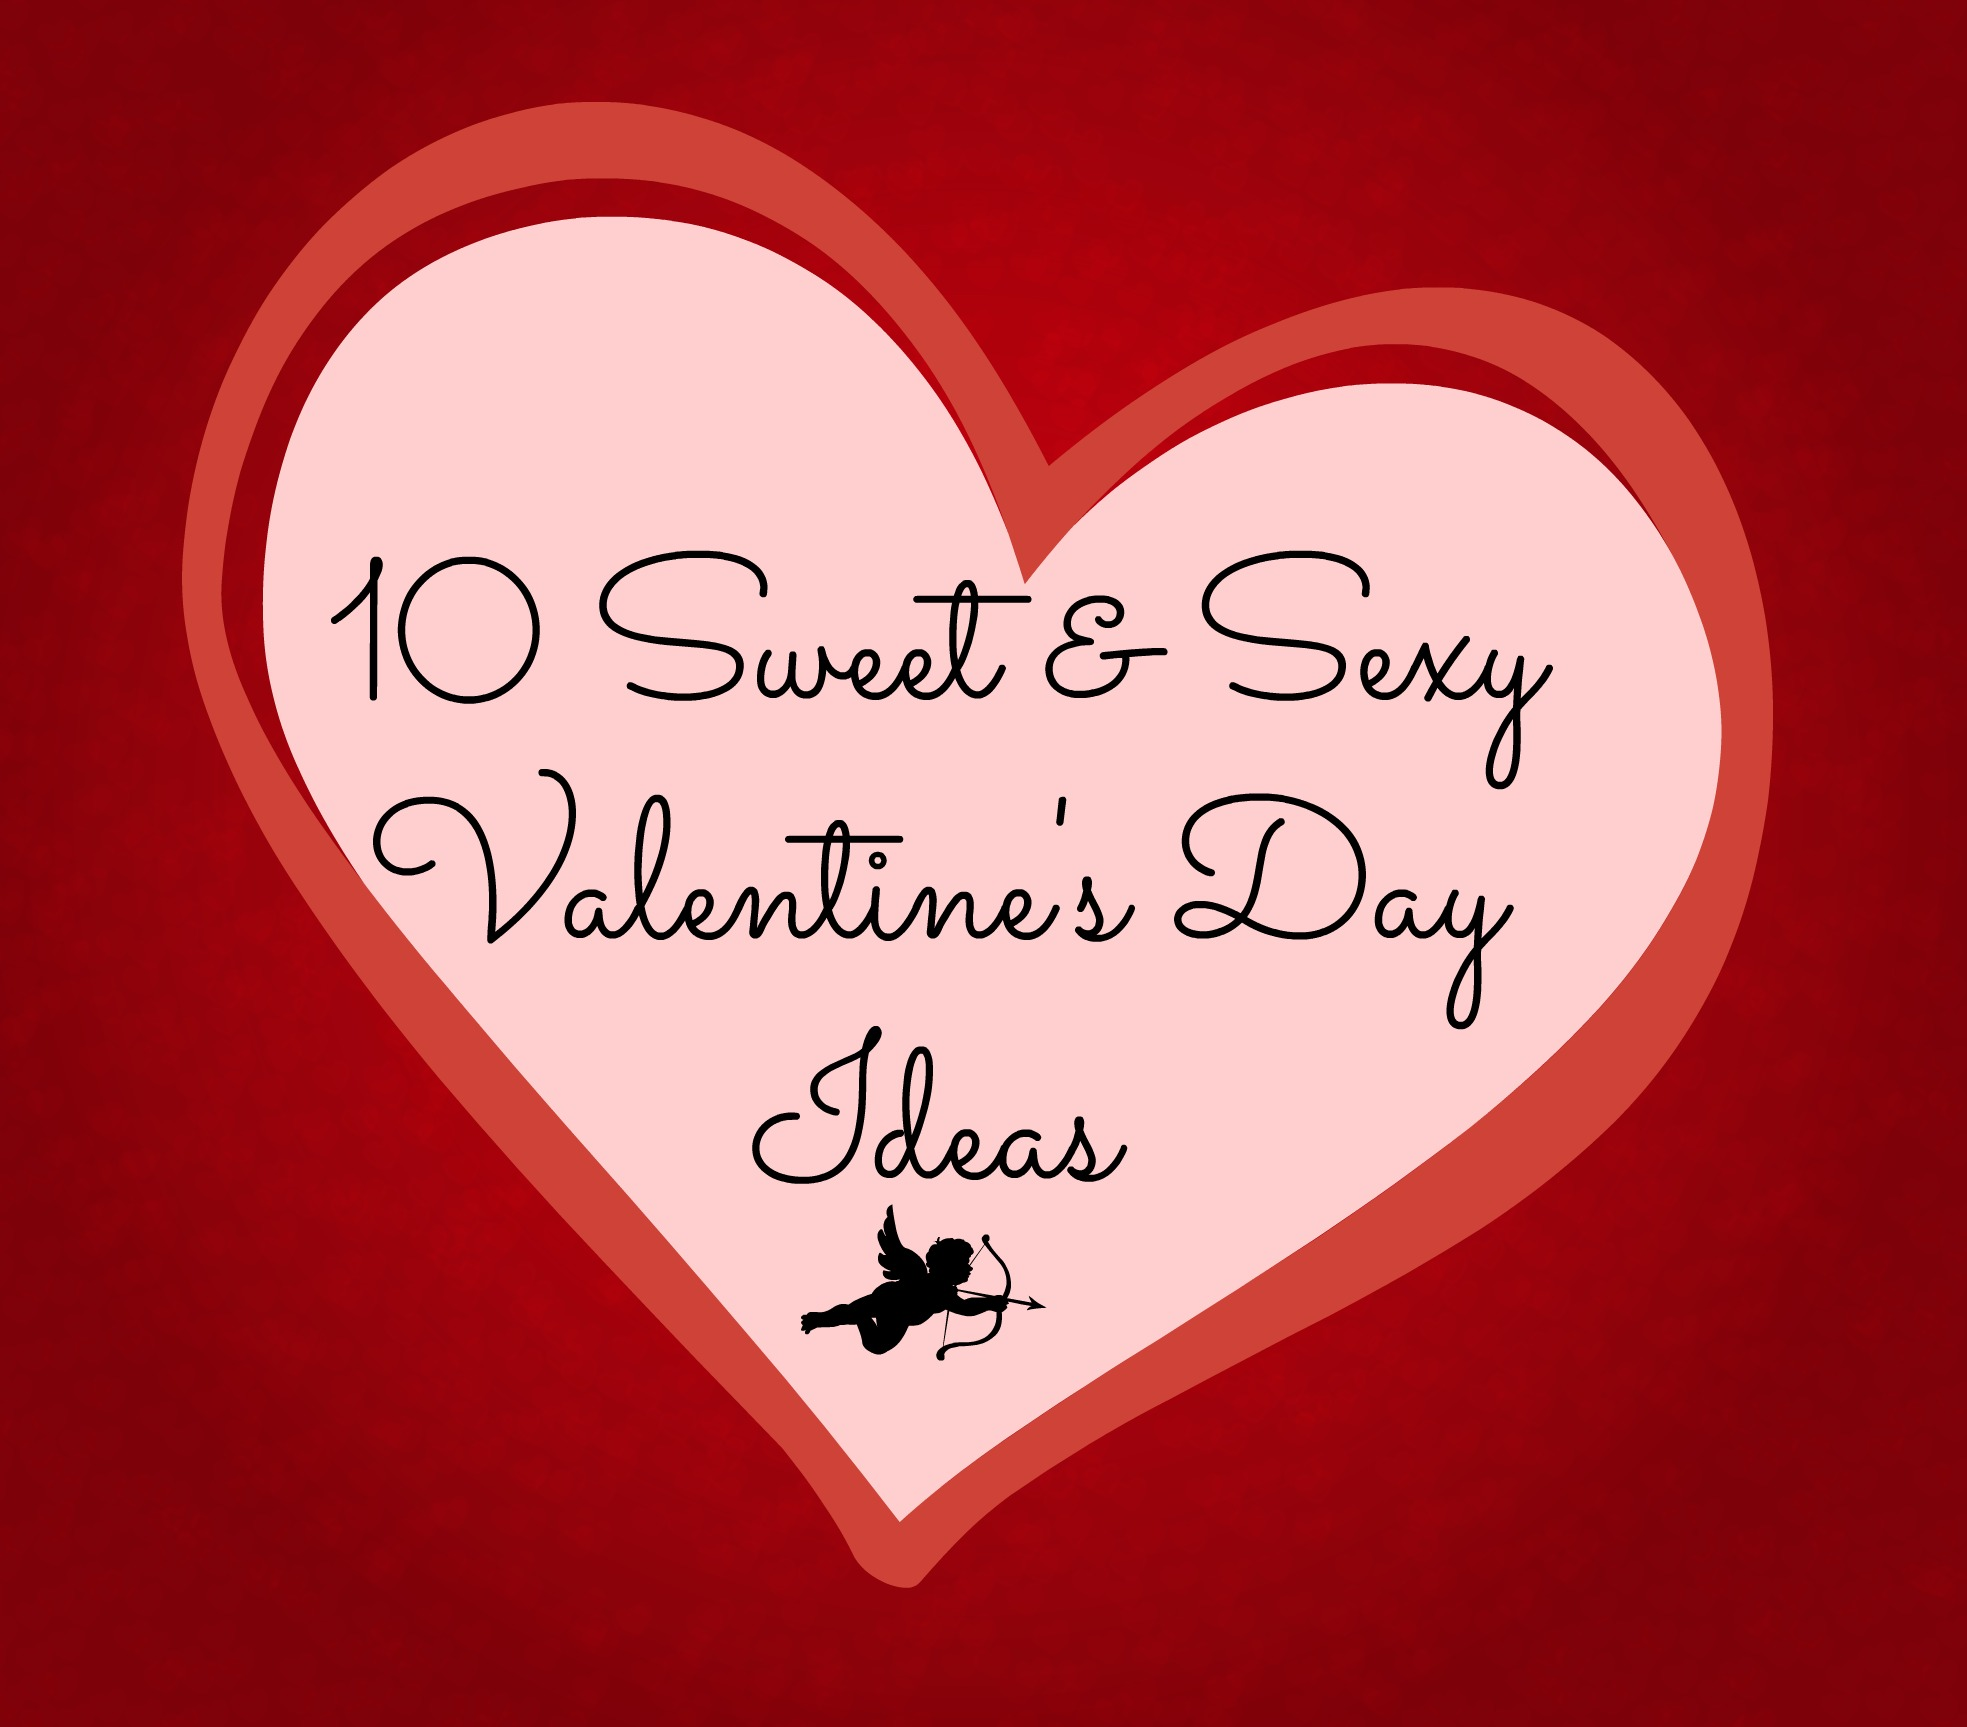 10 Sweet & Sexy Valentine's Day Ideas - momma in flip flops